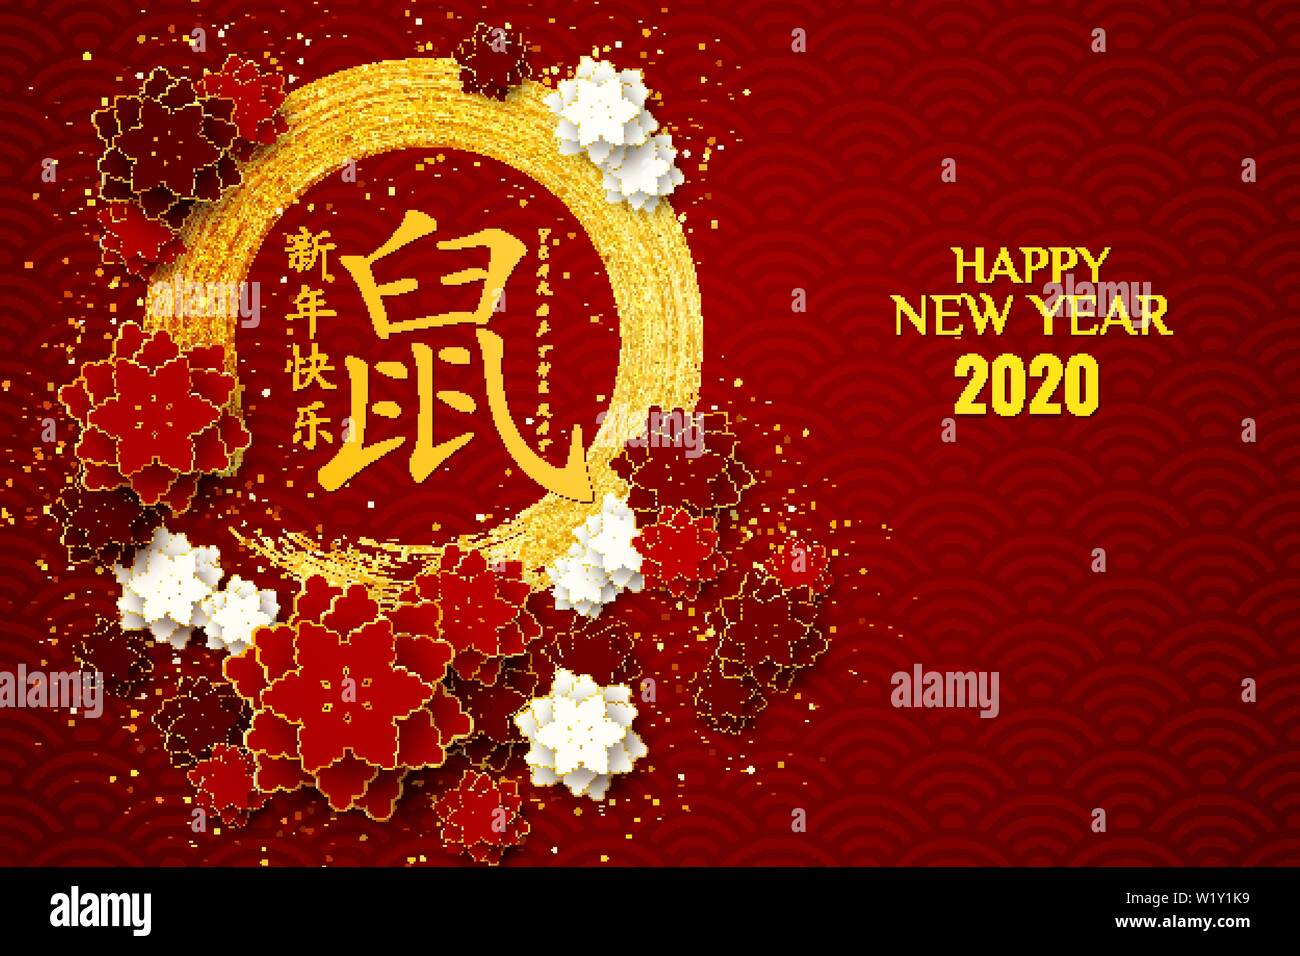 Asian New Year 2020.Happy Chinese New Year 2020 Red Greeting Card Stock Vector